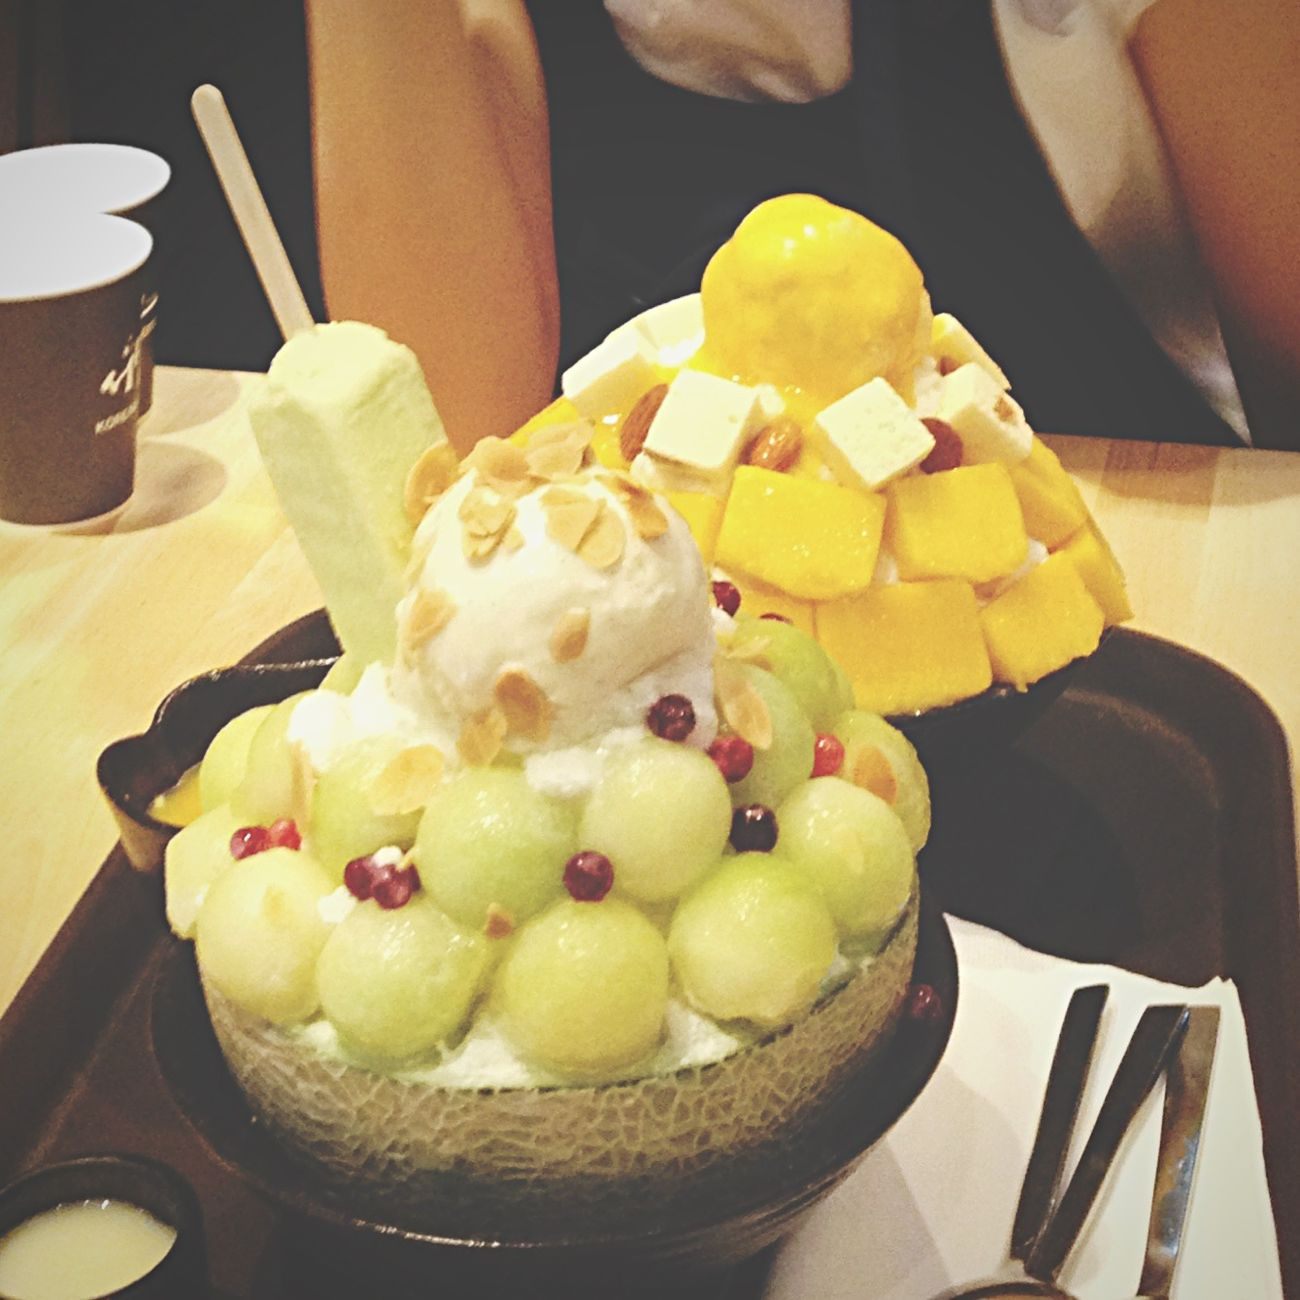 Yummy Bingsu SeoBingGo Favorite Enjoy Eating Desserts Dessert Porn Enjoy Time Meeting Friends Enjoying Life